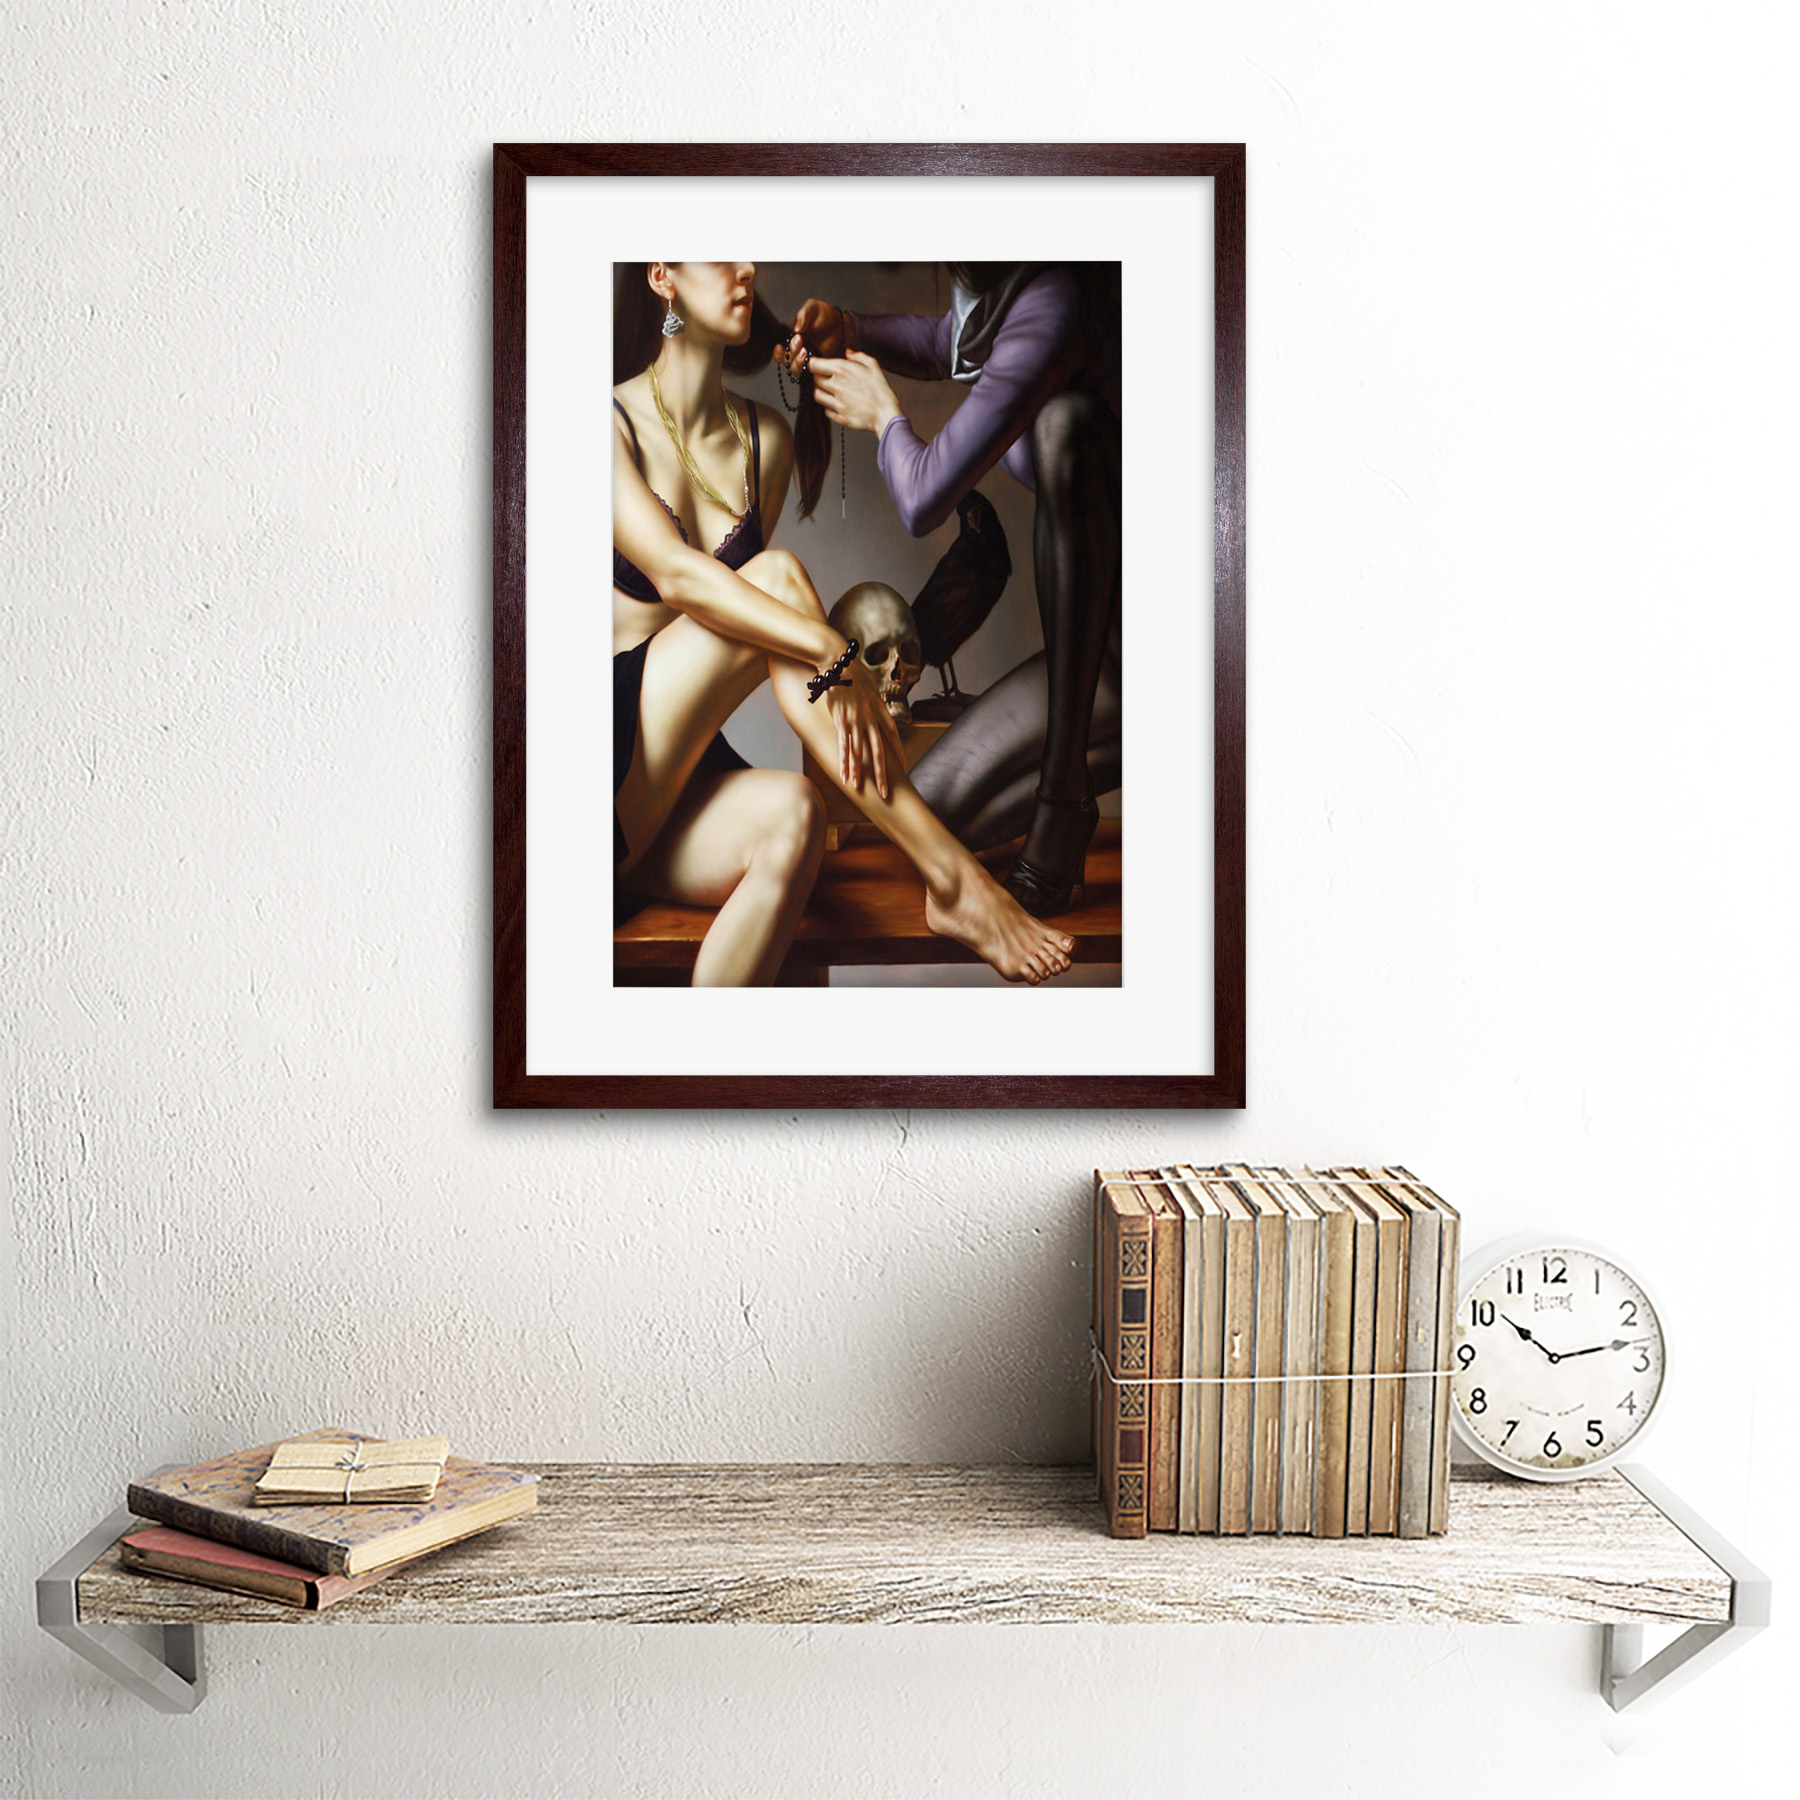 Painting-Balcar-Entering-Renaissance-Framed-Art-Print-12x16-Inch 縮圖 8